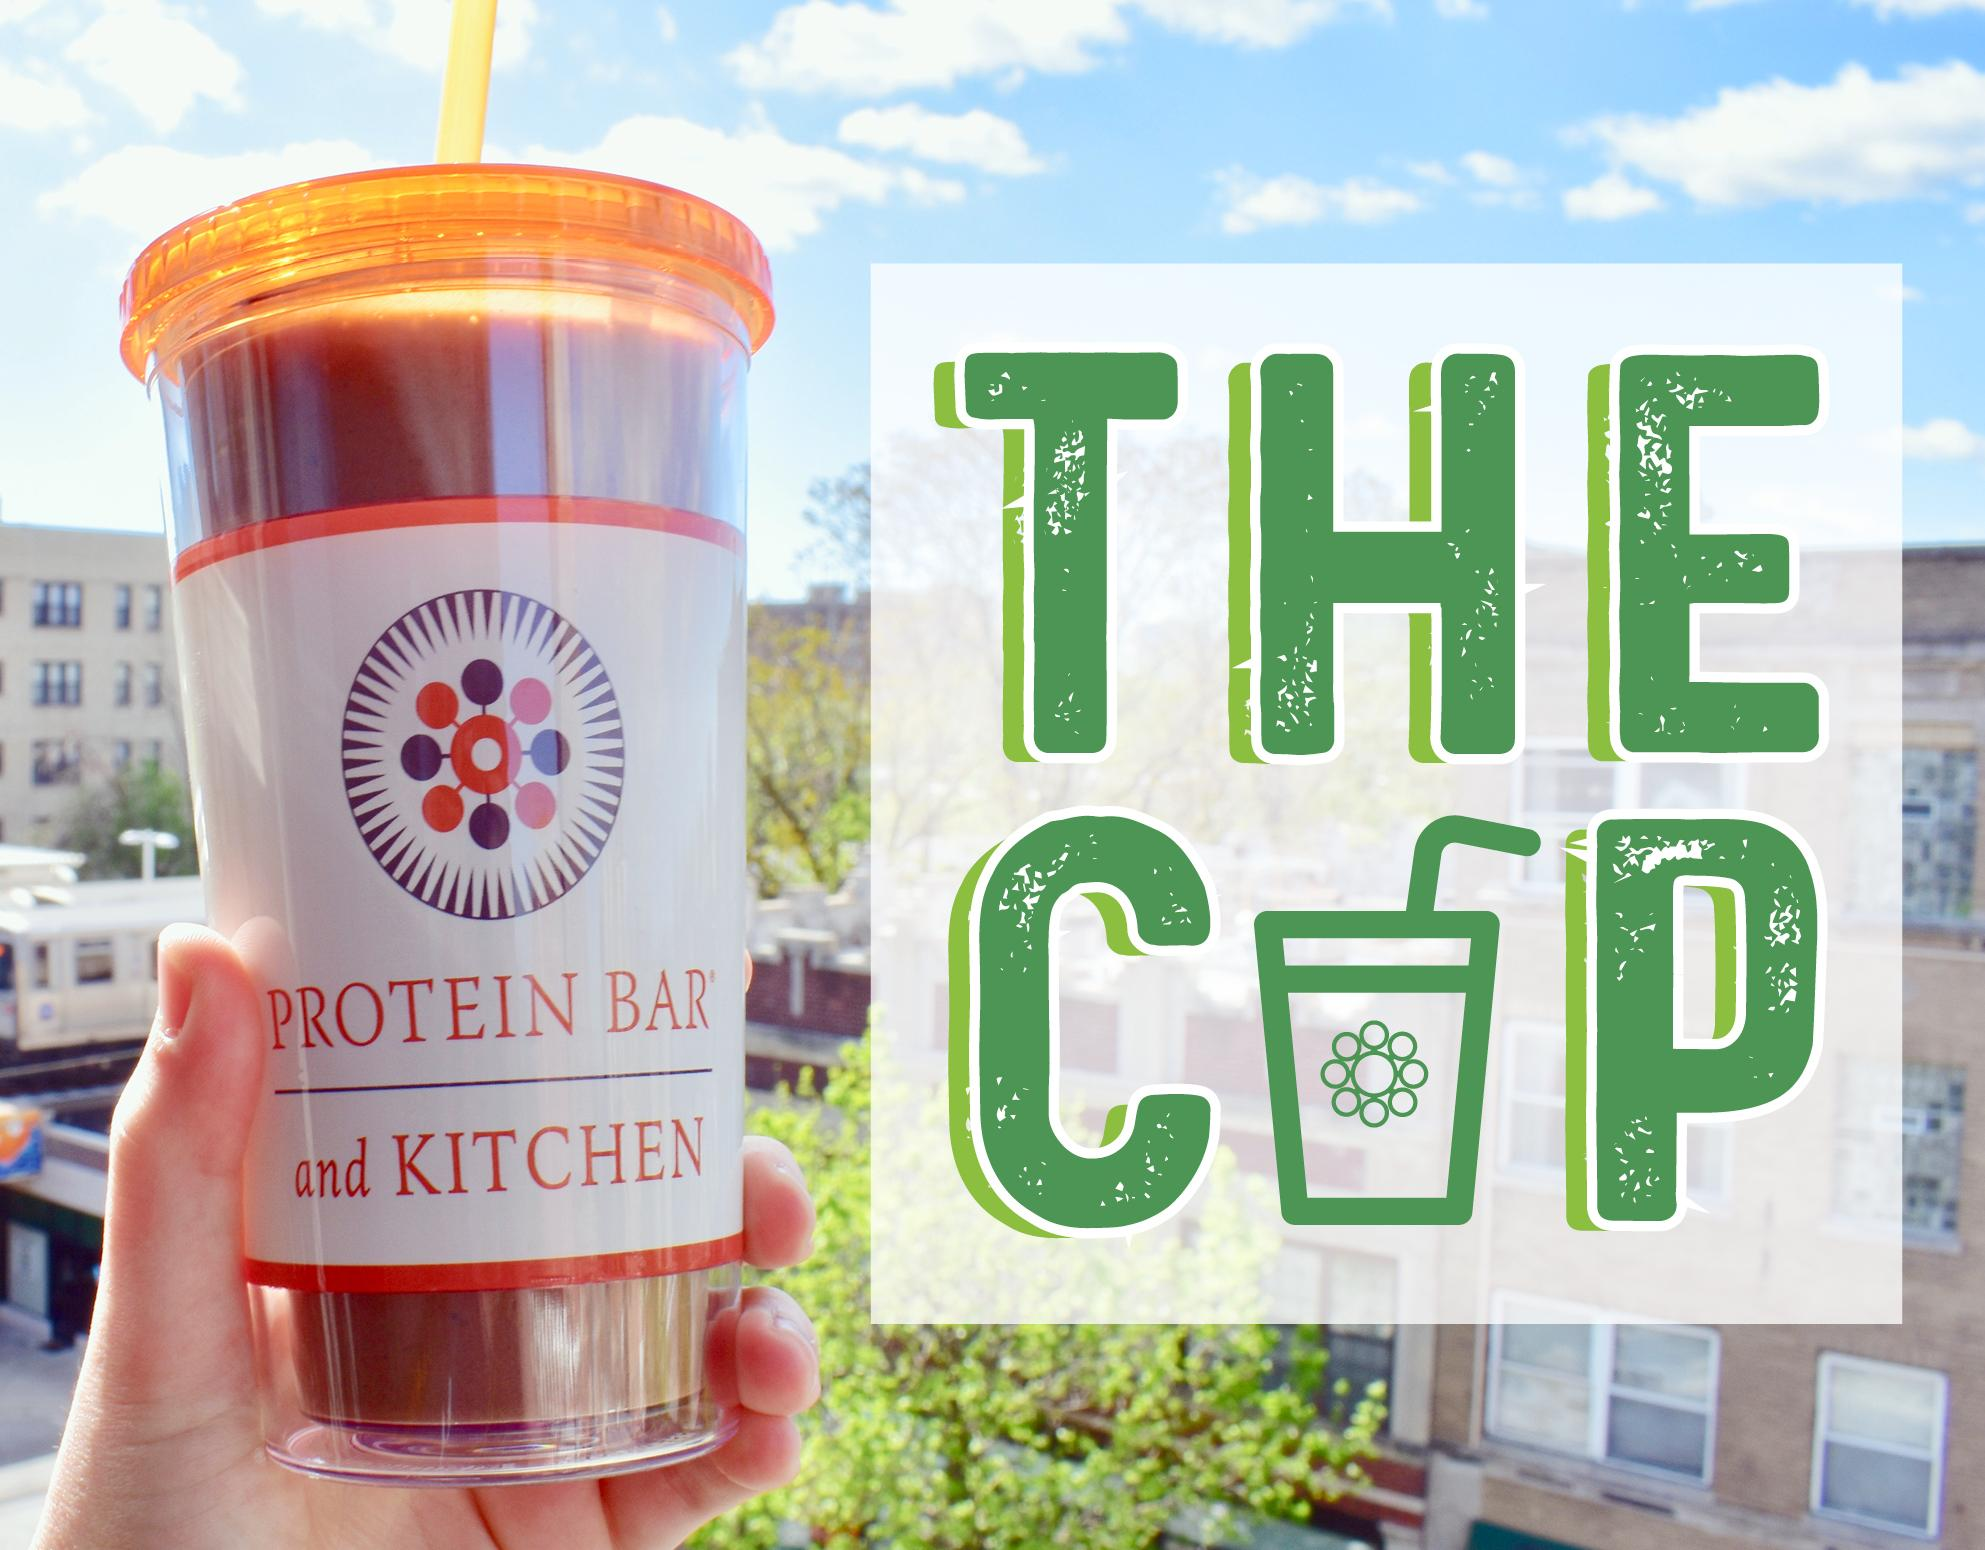 LIMITED TIME ONLY: THE CUP